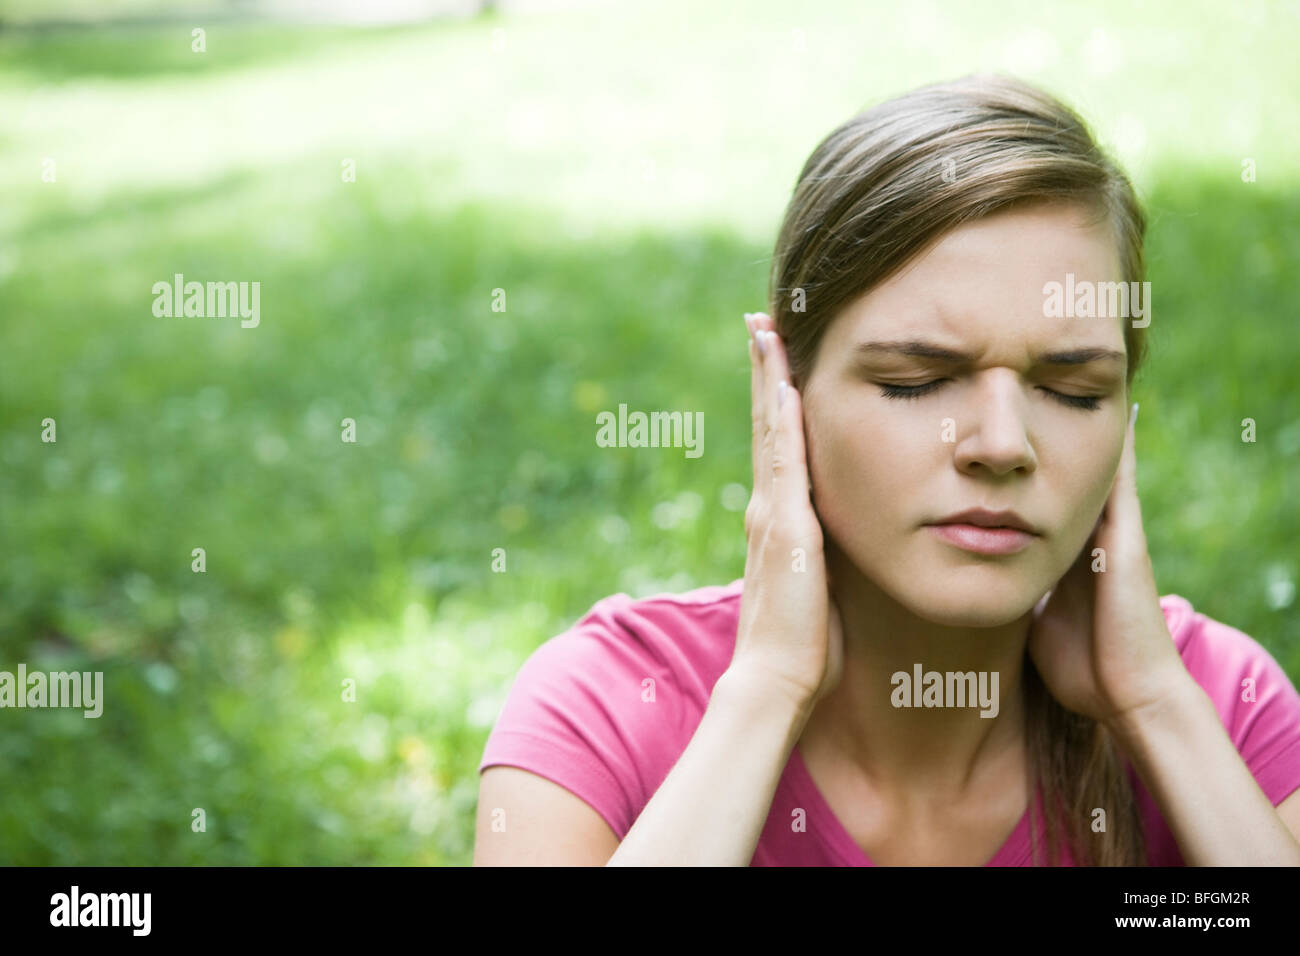 woman covering ears - Stock Image